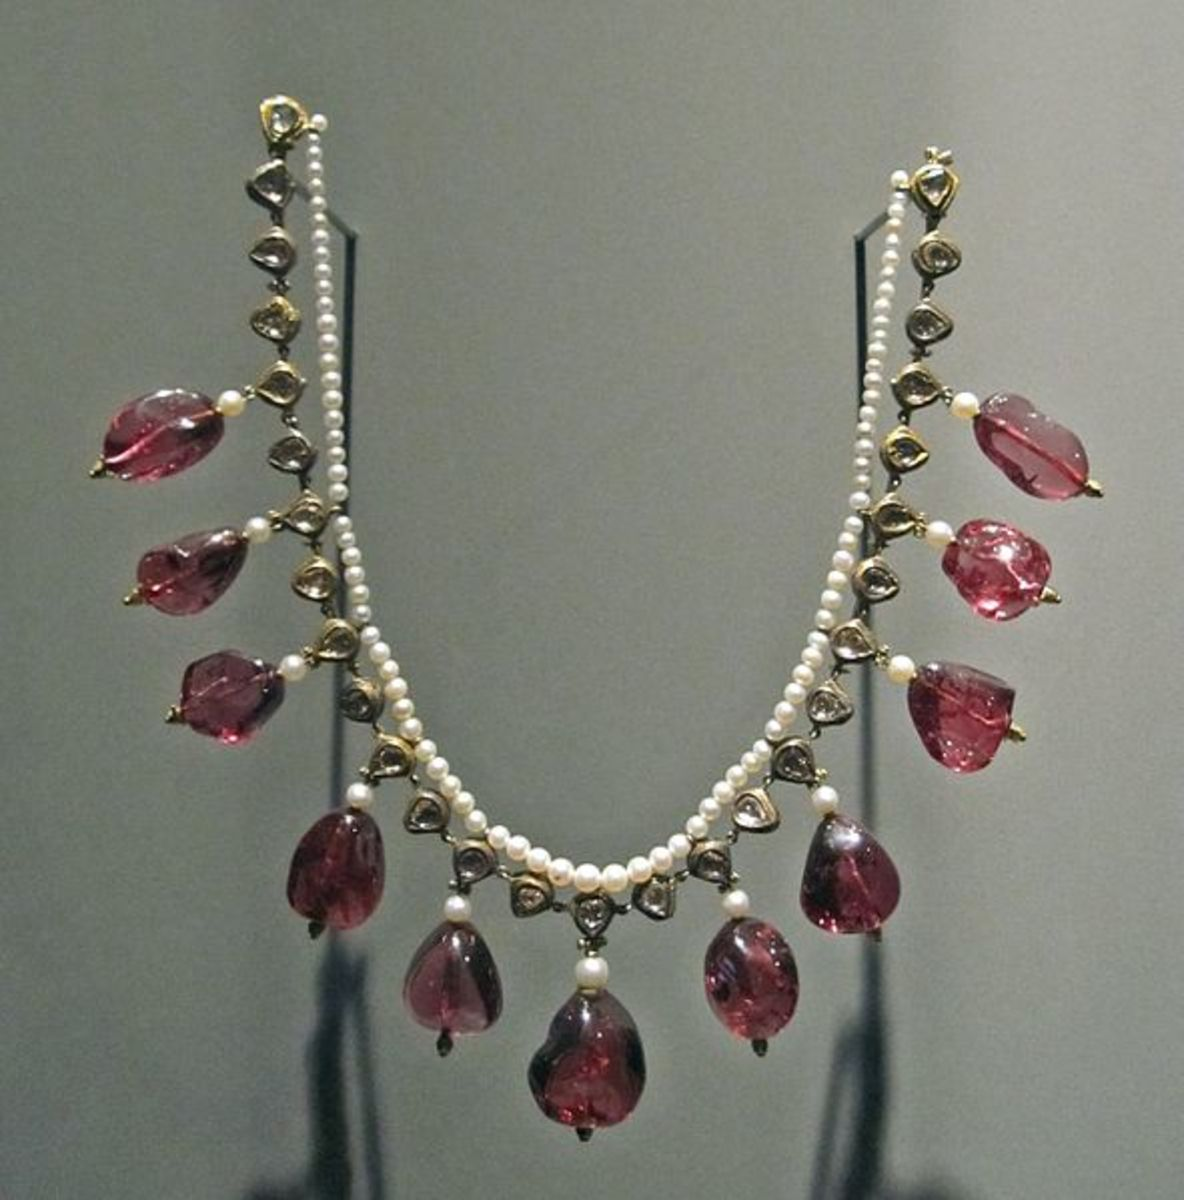 Mughal necklace made of gold and embellished with pearls and precious gemstones.